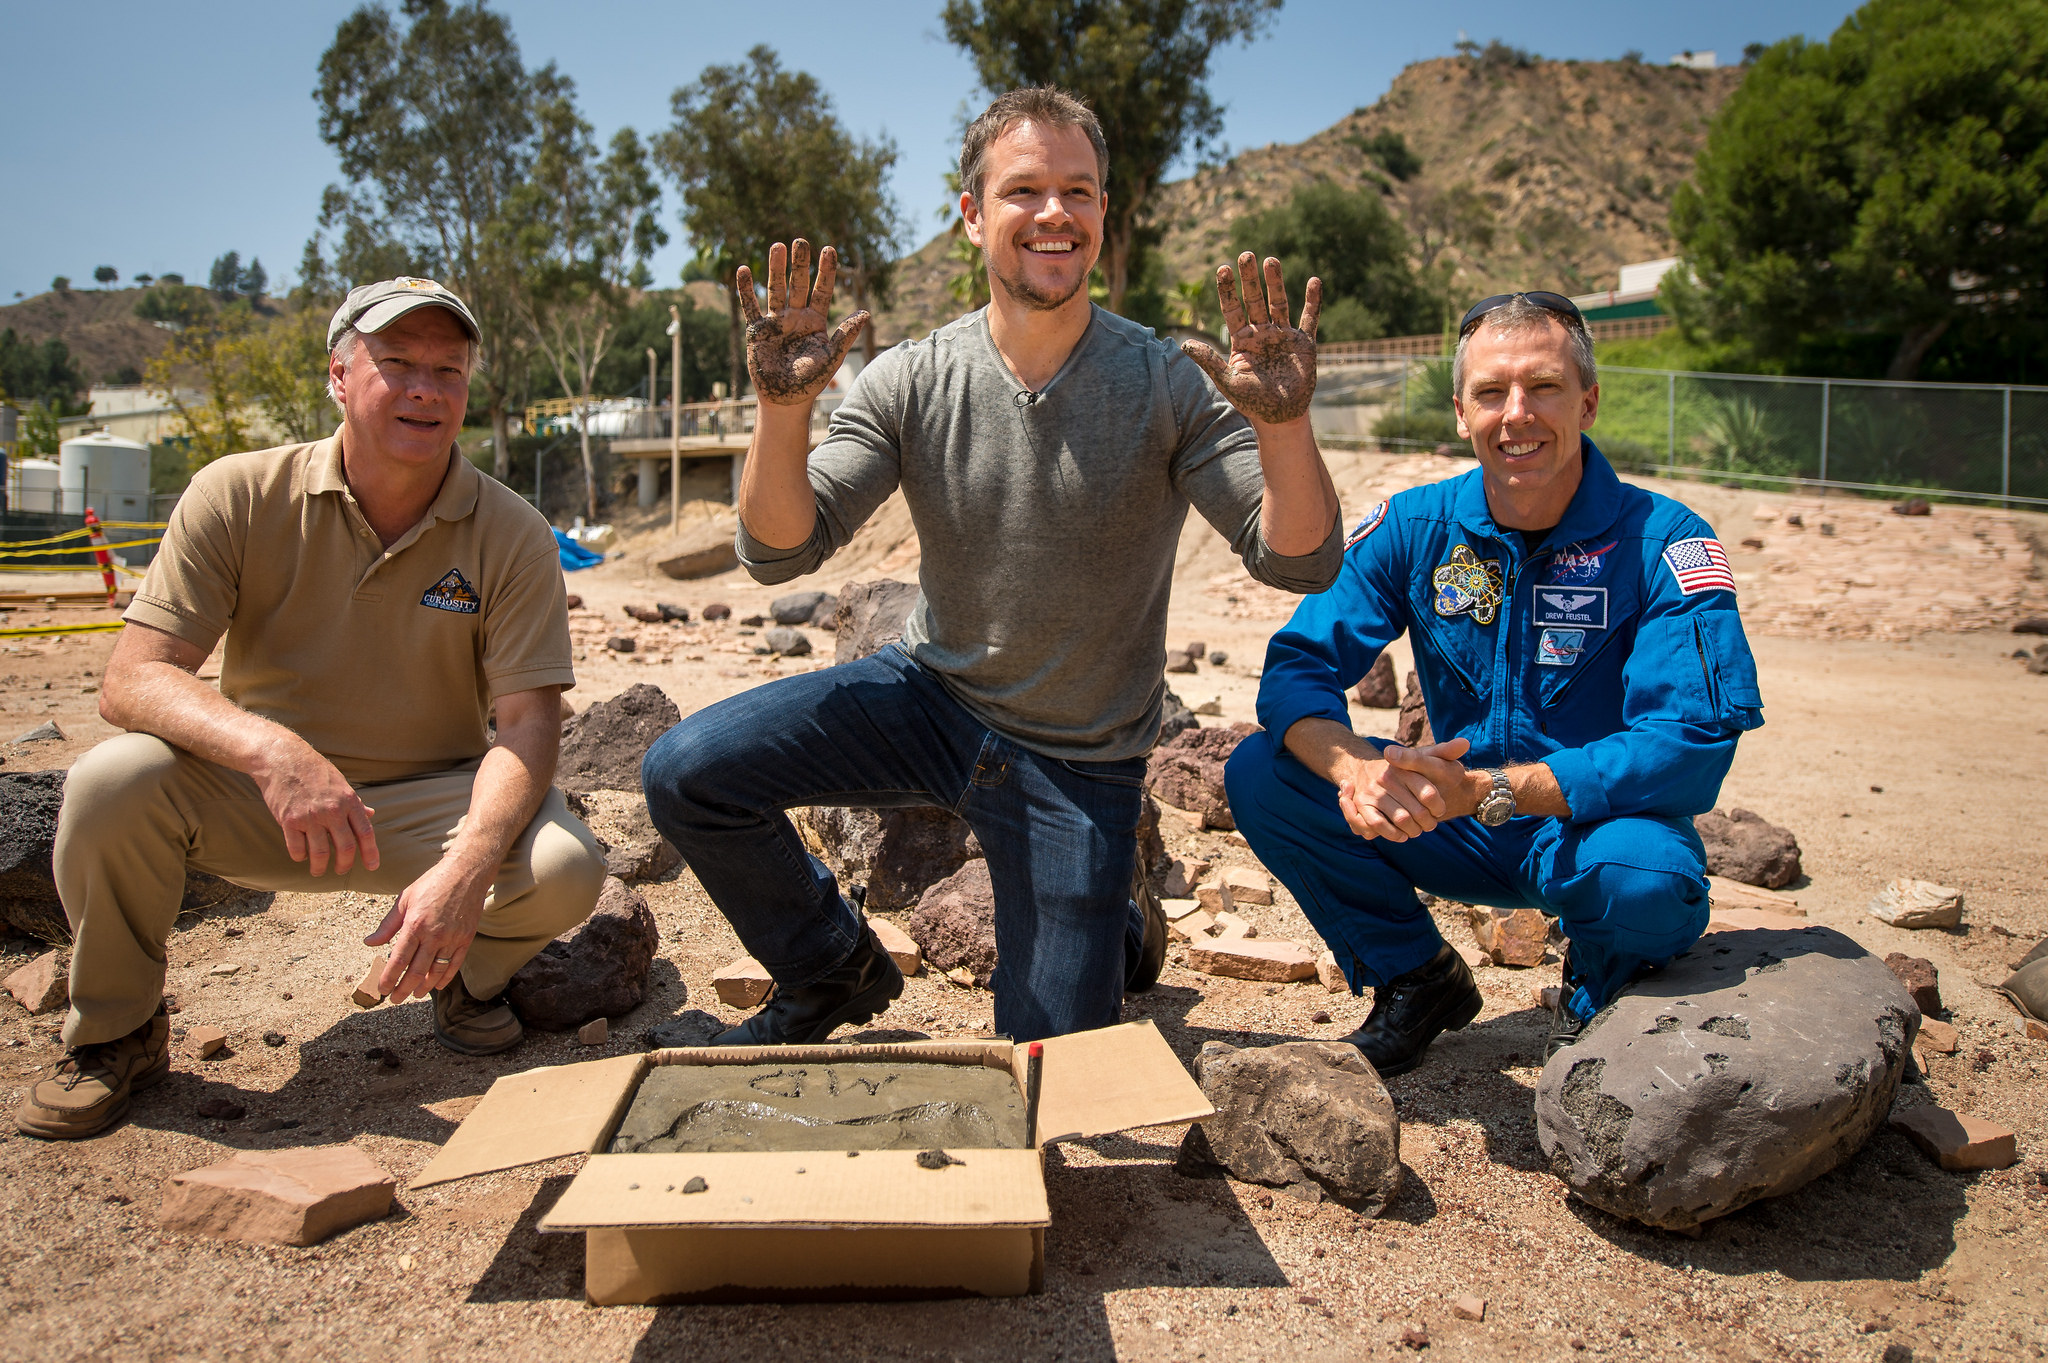 Matt Damon Makes Hand Prints at JPL